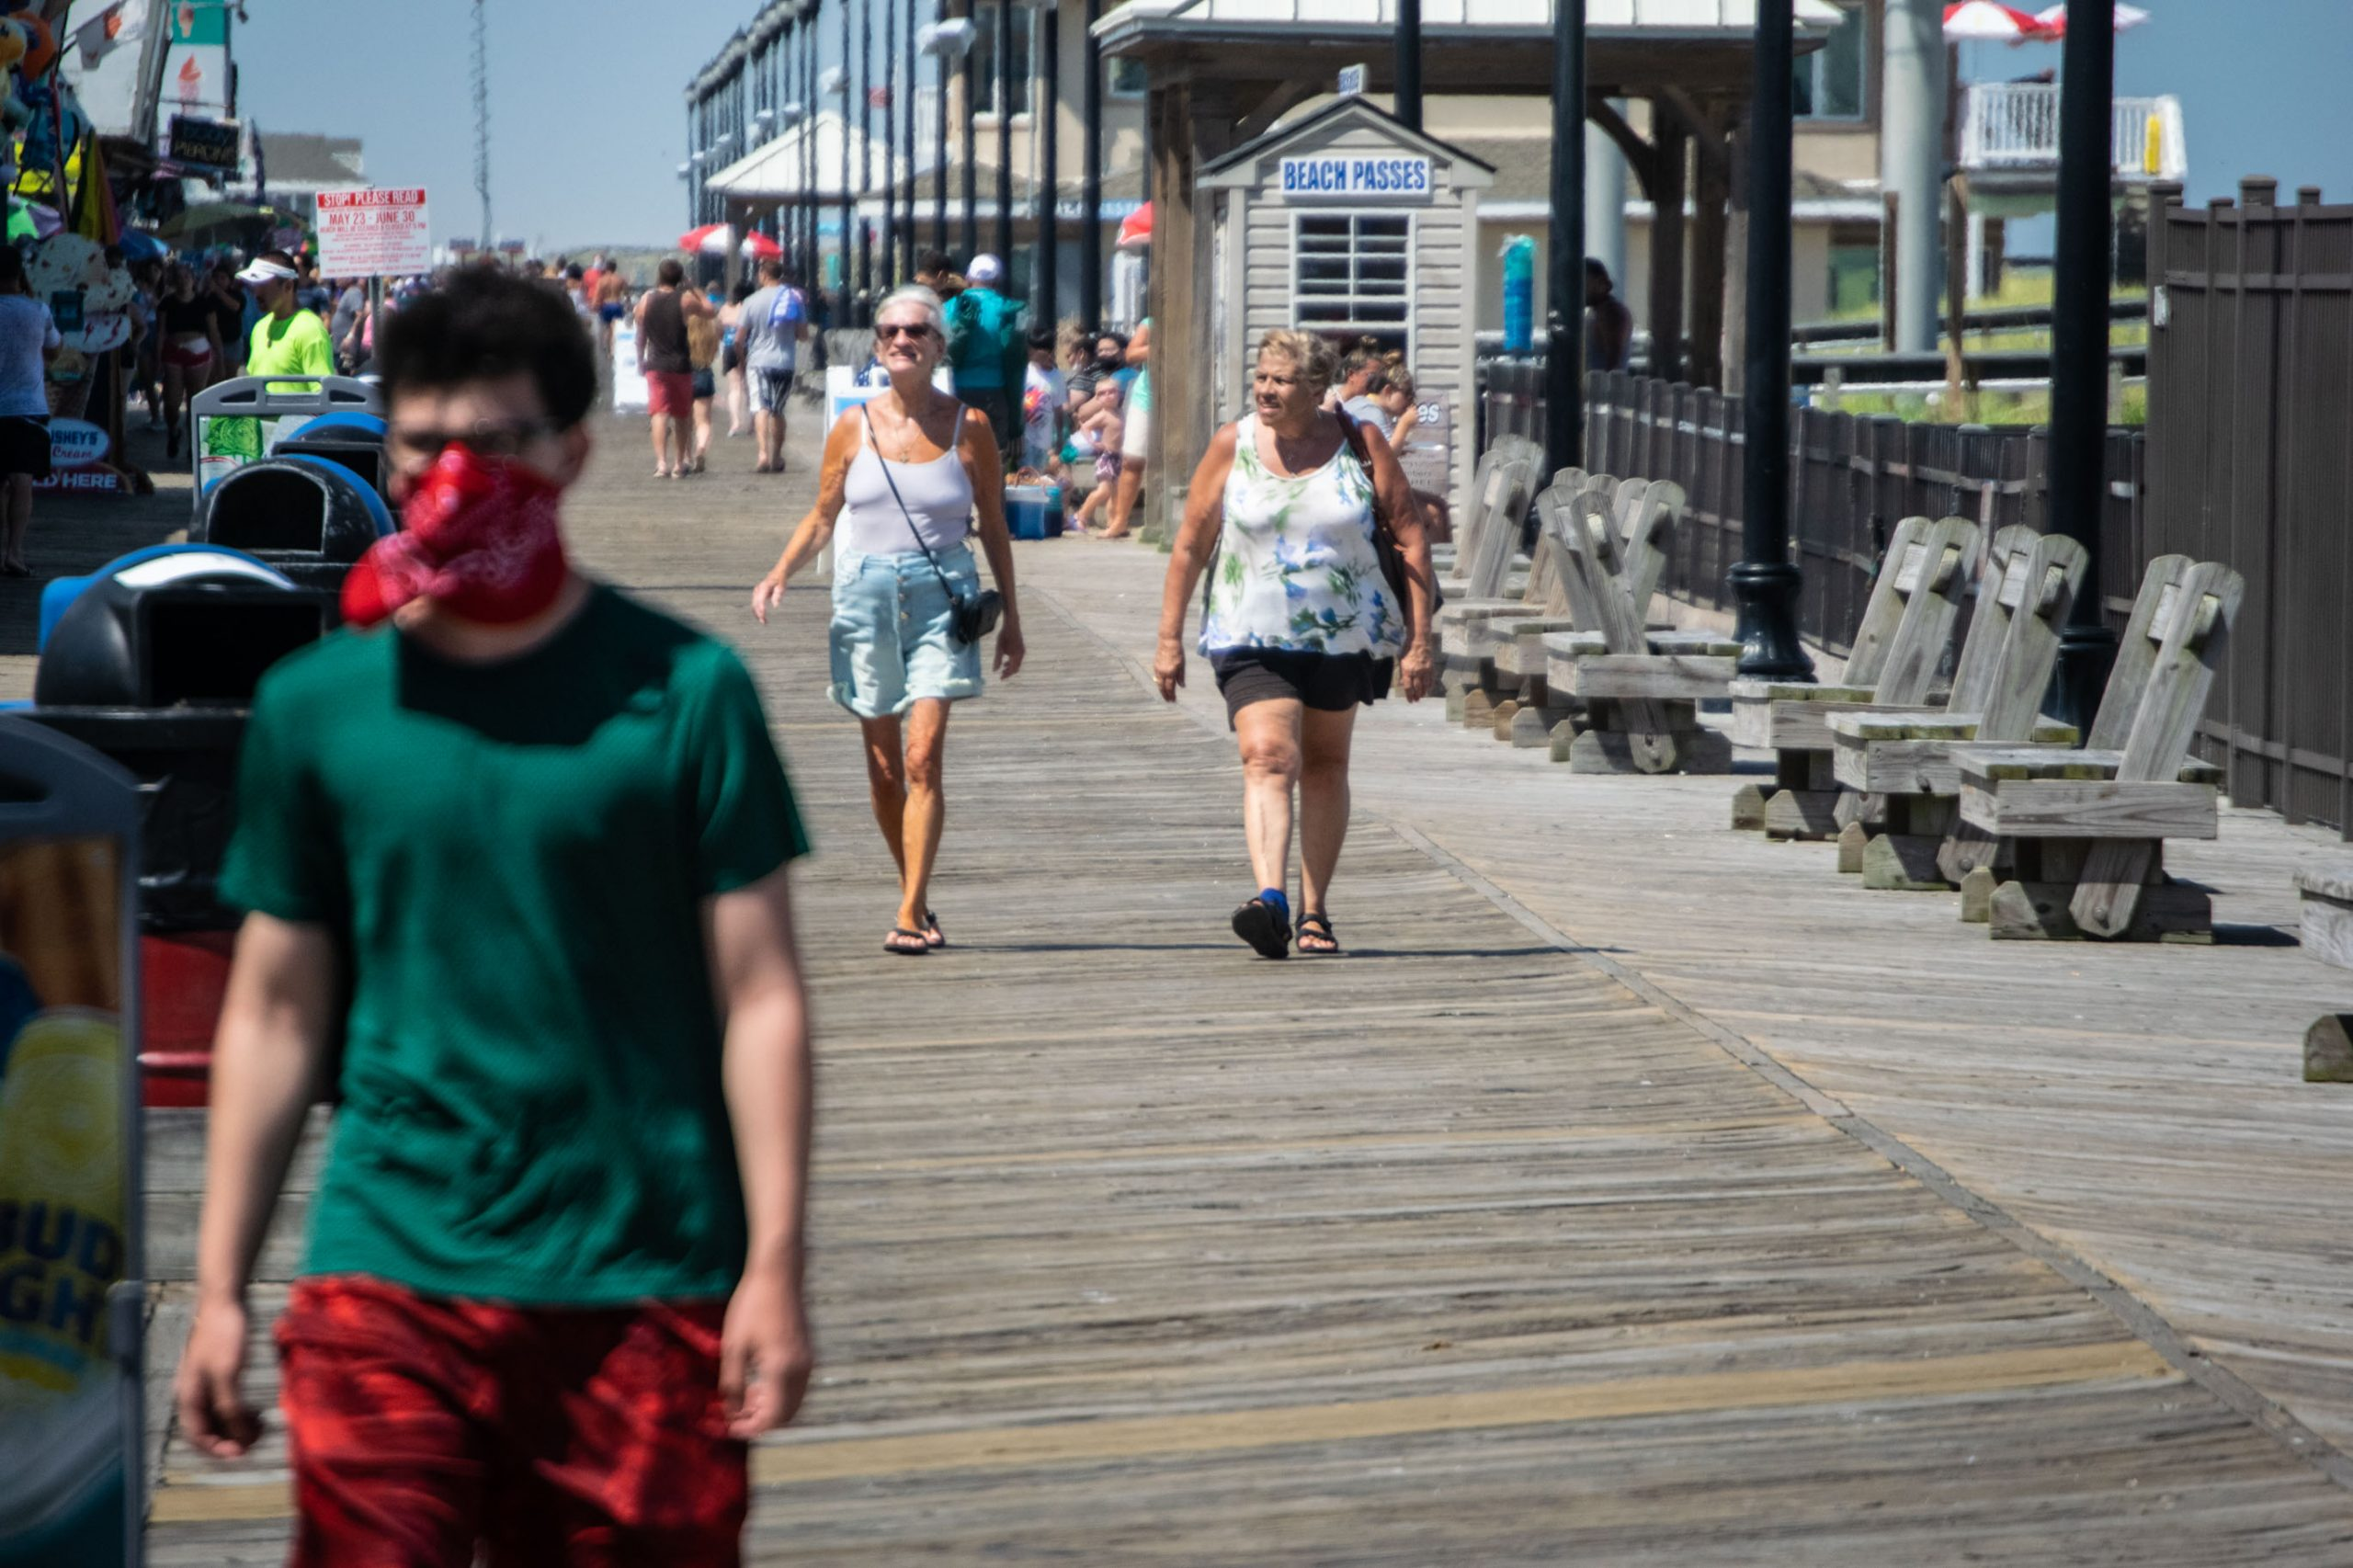 Visitors to the boardwalk and rides in Seaside Heights, N.J. wear face masks July 8, 2020. (Photo: Daniel Nee)